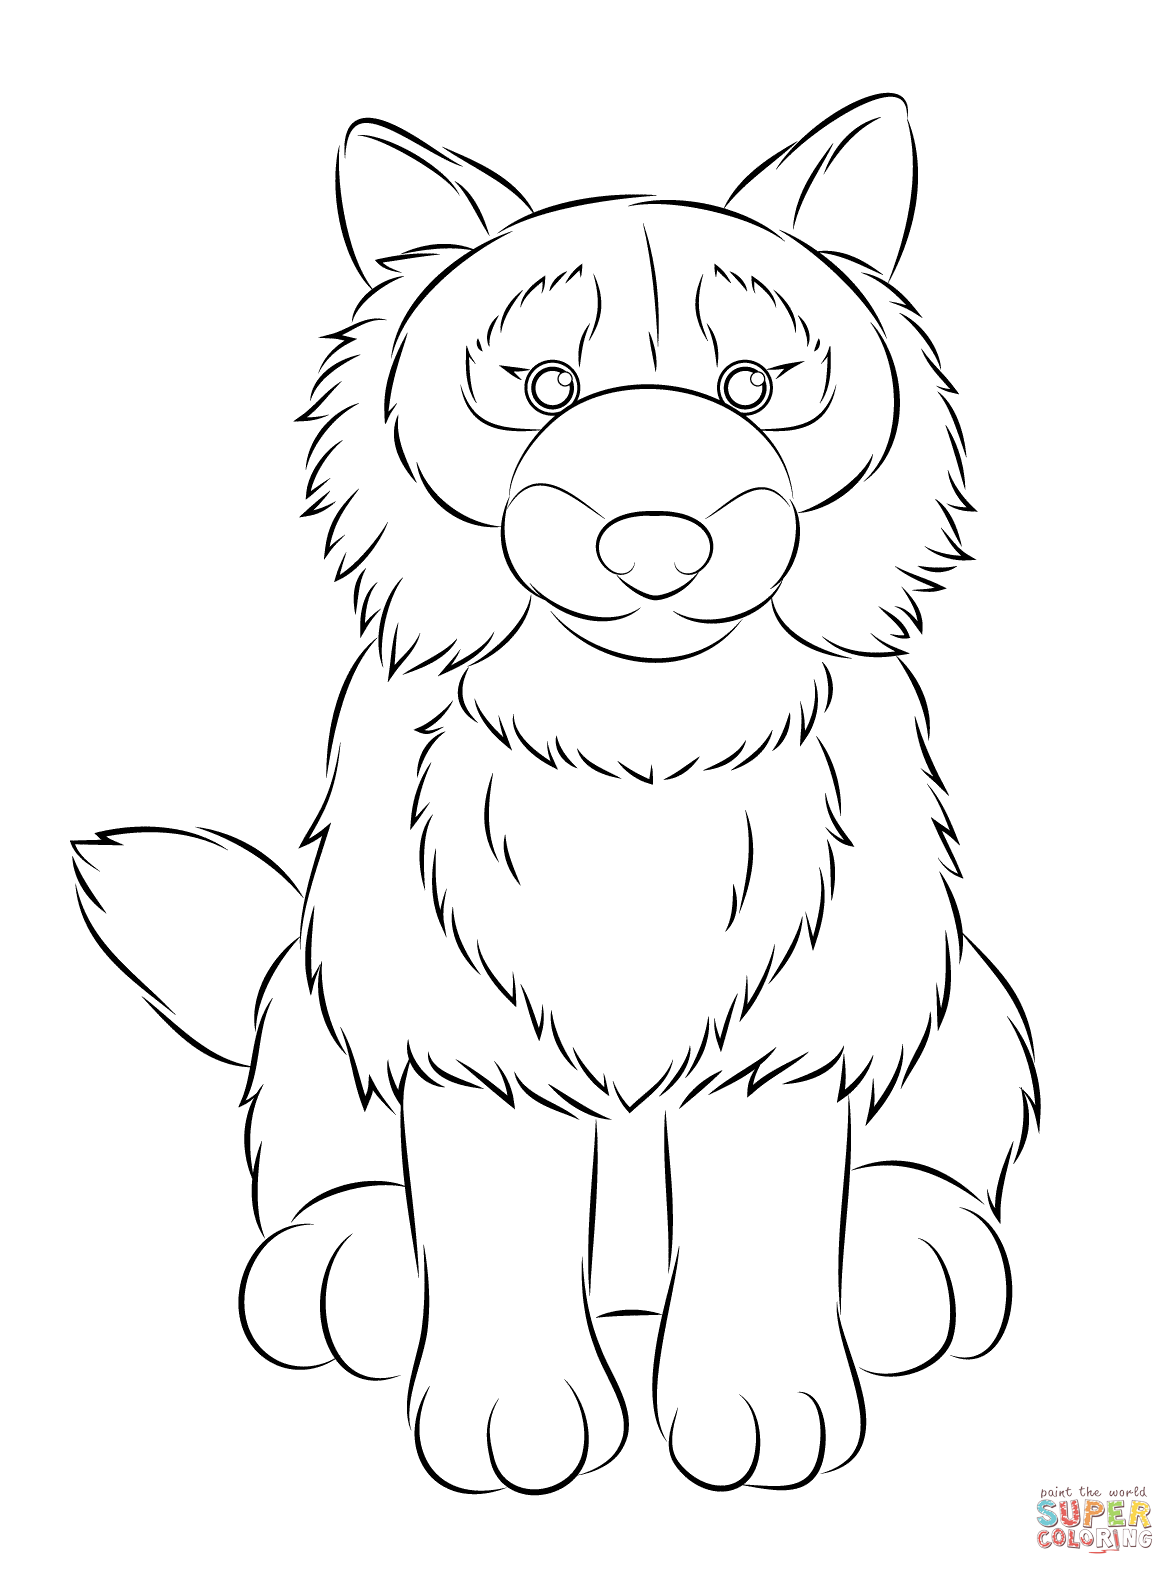 Webkinz Dog Coloring Page Free Printable Coloring Pages